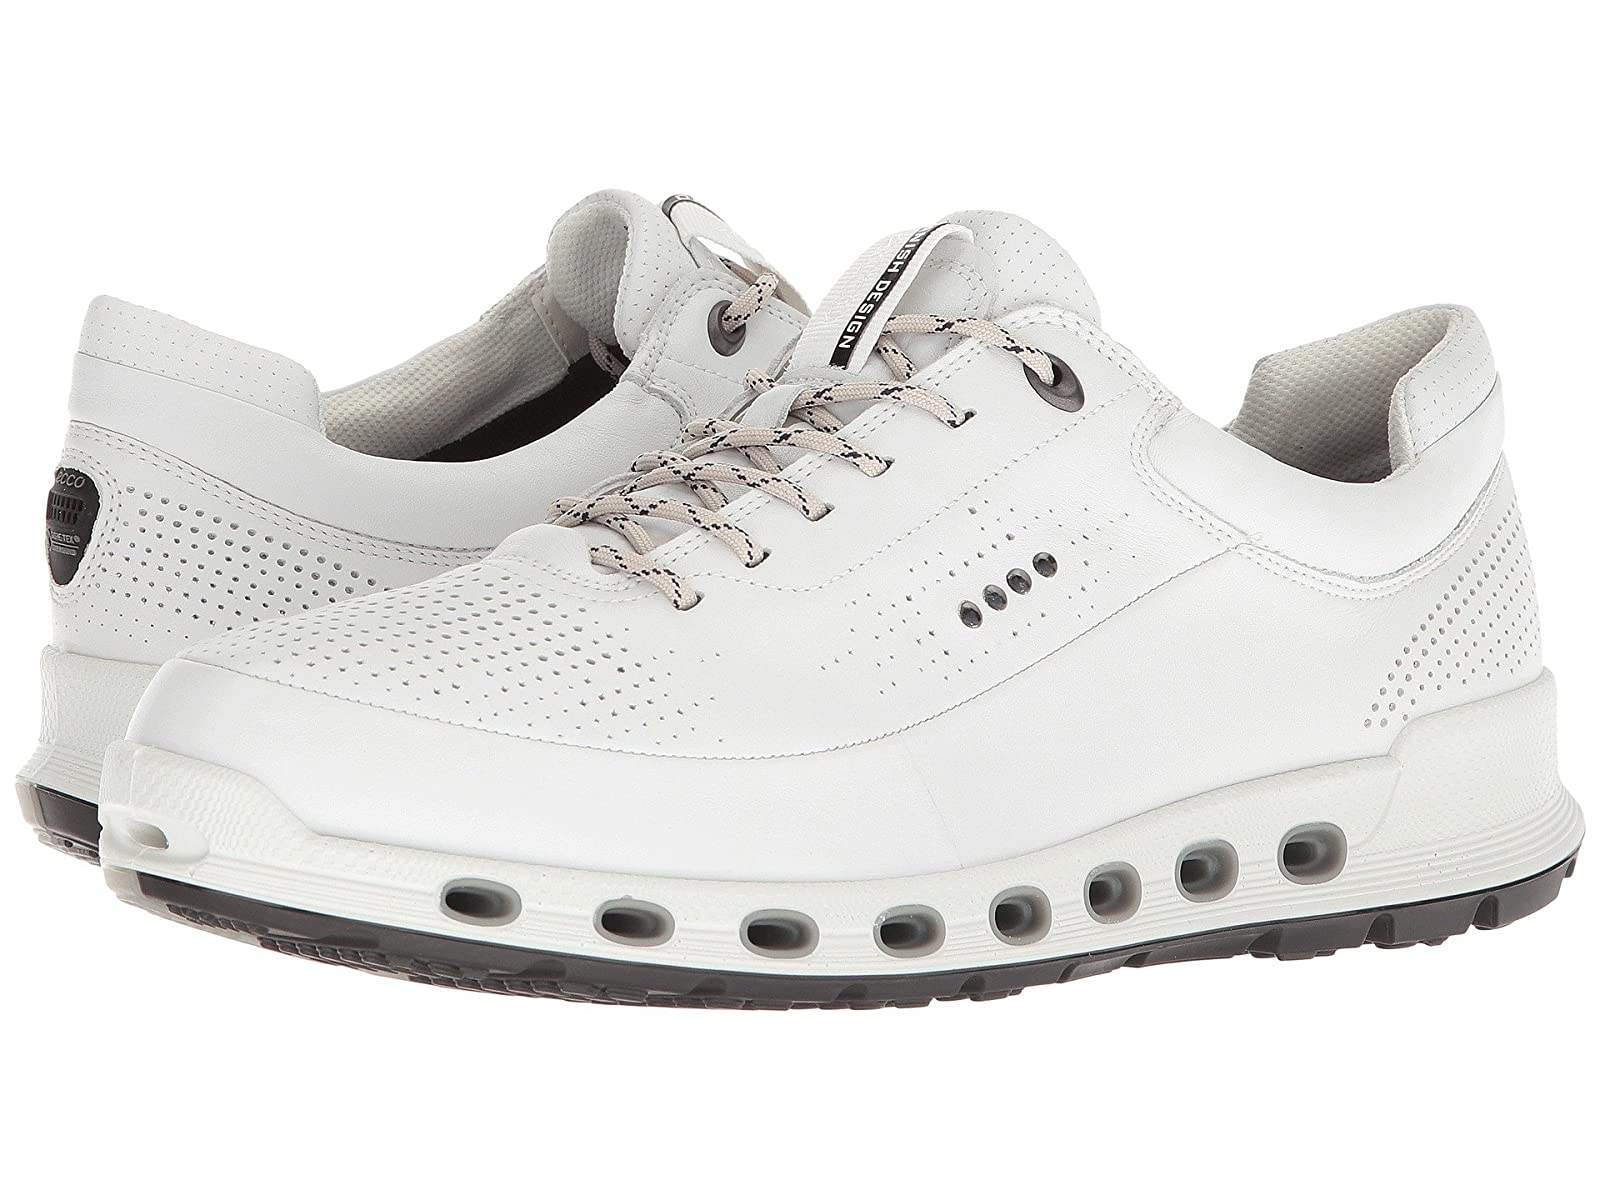 ECCO Sport Cool 2.0 Leather GTXAtmospheric grades have affordable shoes